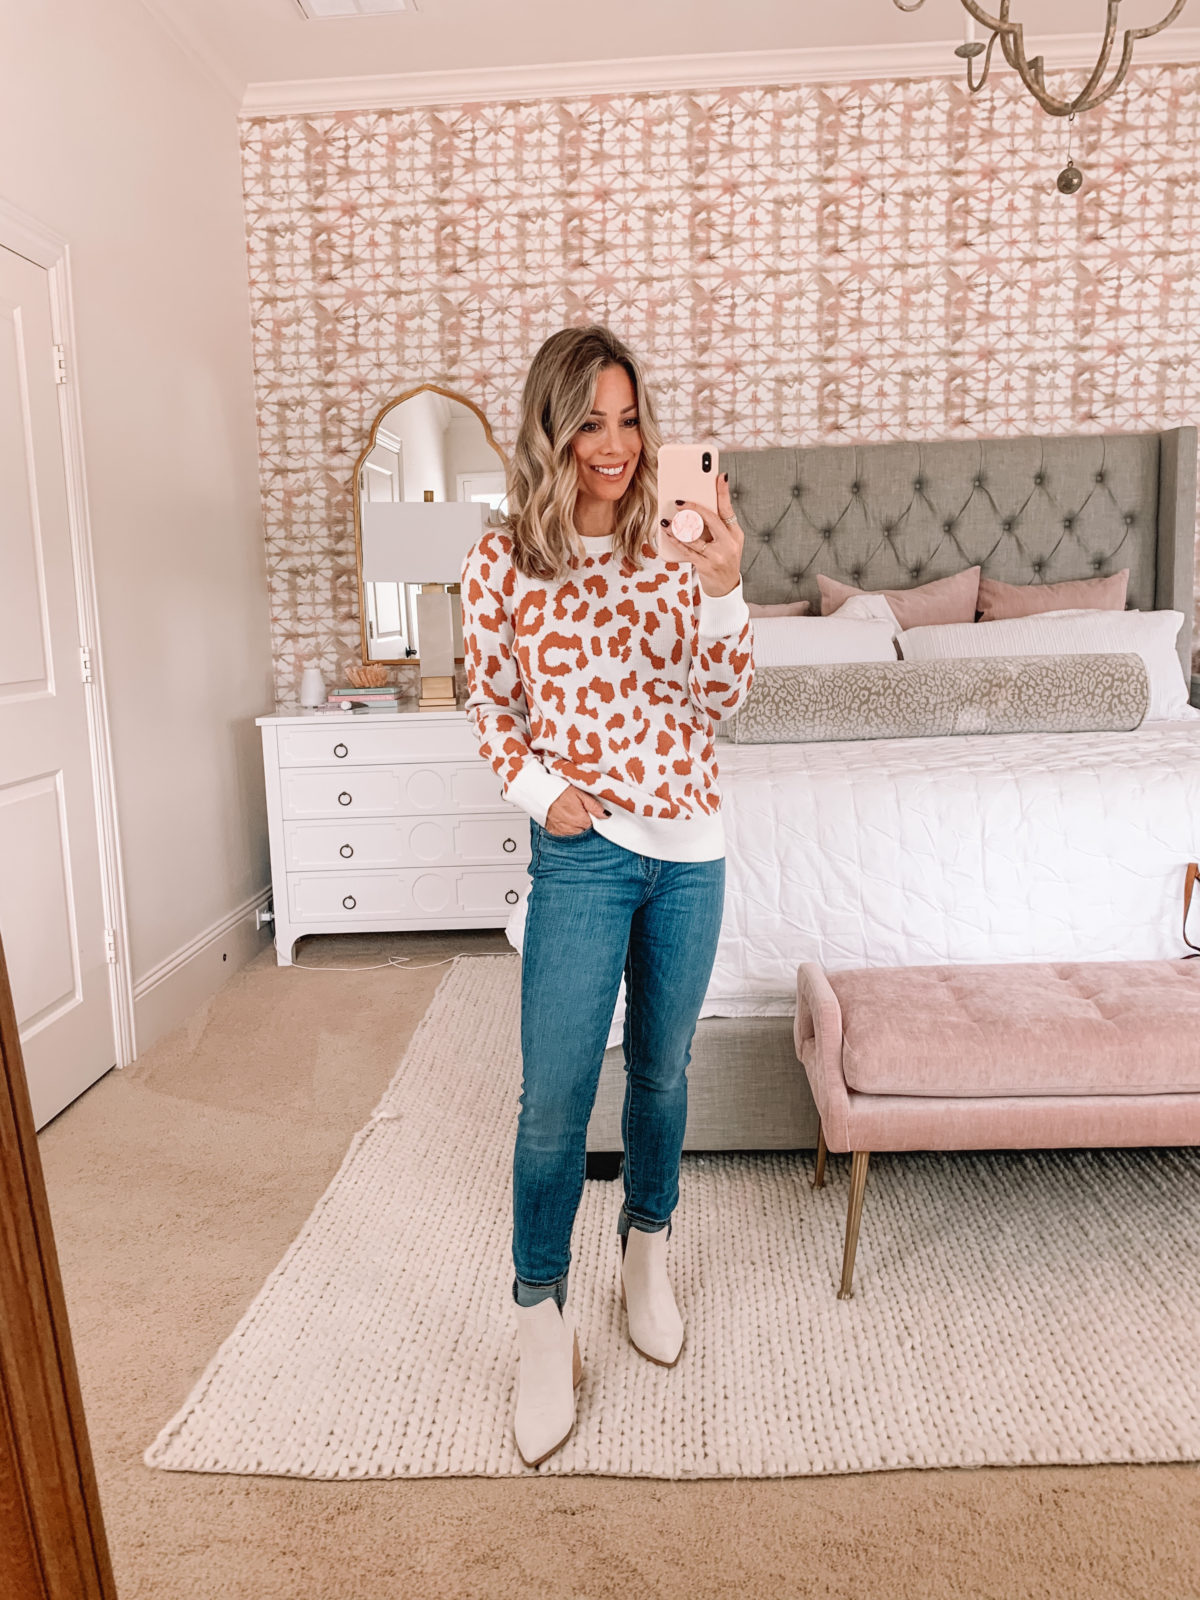 Amazon Fashion Faves, Leopard Sweater, Jeans, Booties